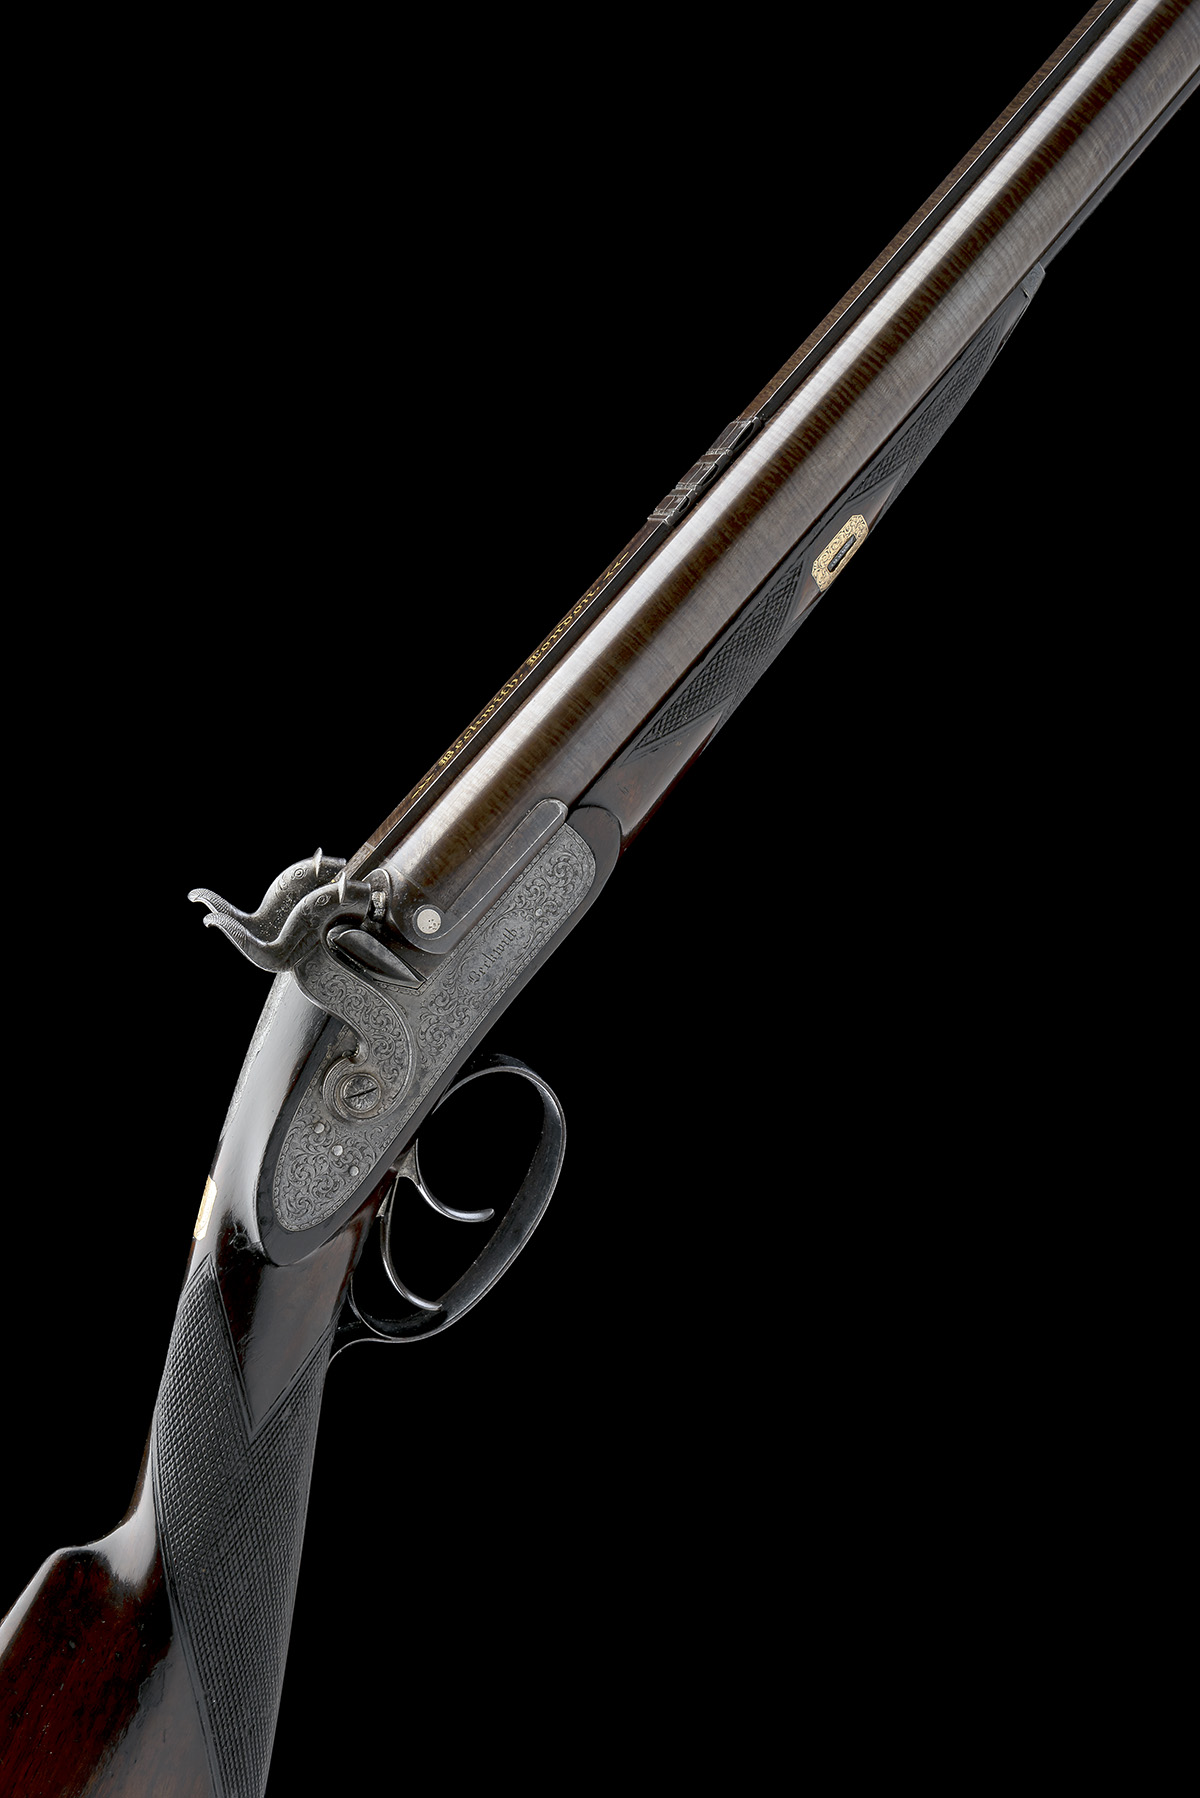 BECKWITH, LONDON A FINE CASED 15-BORE PERCUSSION DOUBLE-RIFLE FOR DANGEROUS GAME, serial no. 2747,